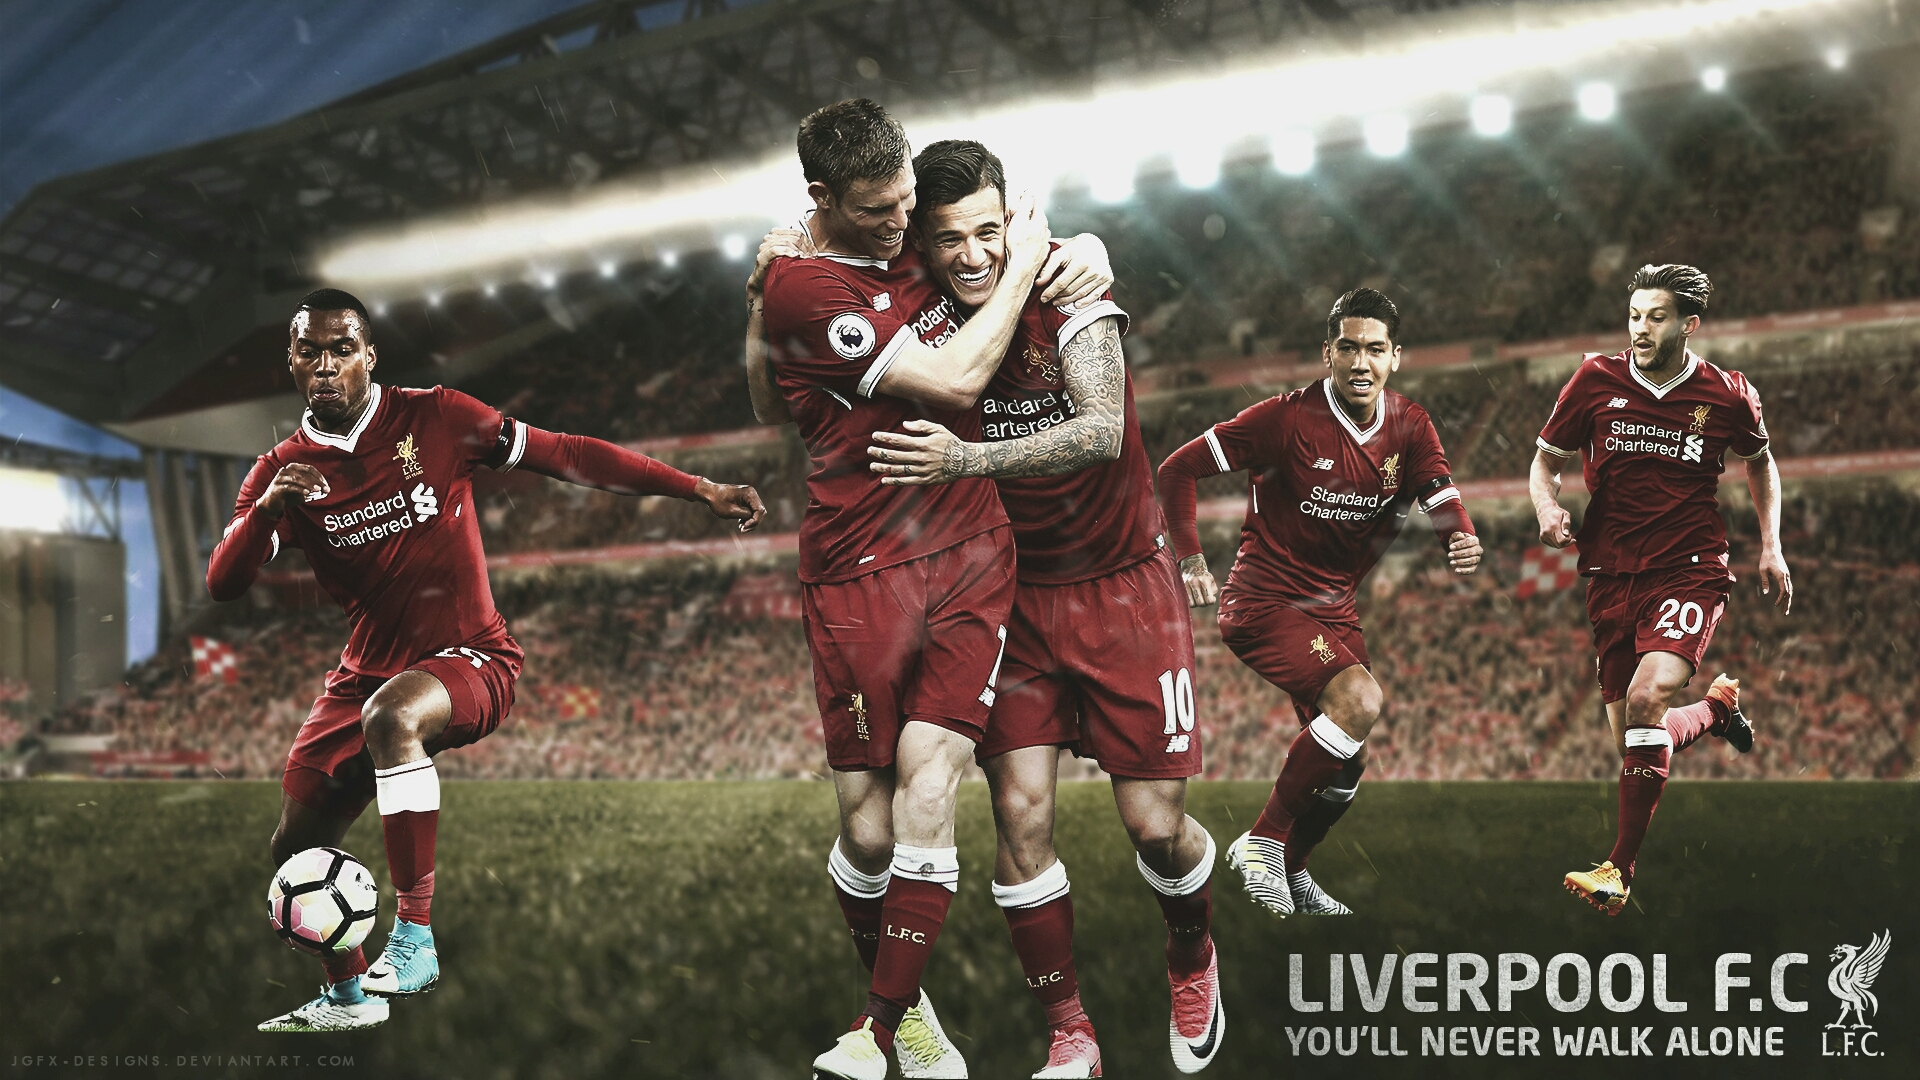 Liverpool FC Wallpaper   20172018 by jgfx designs on 1920x1080